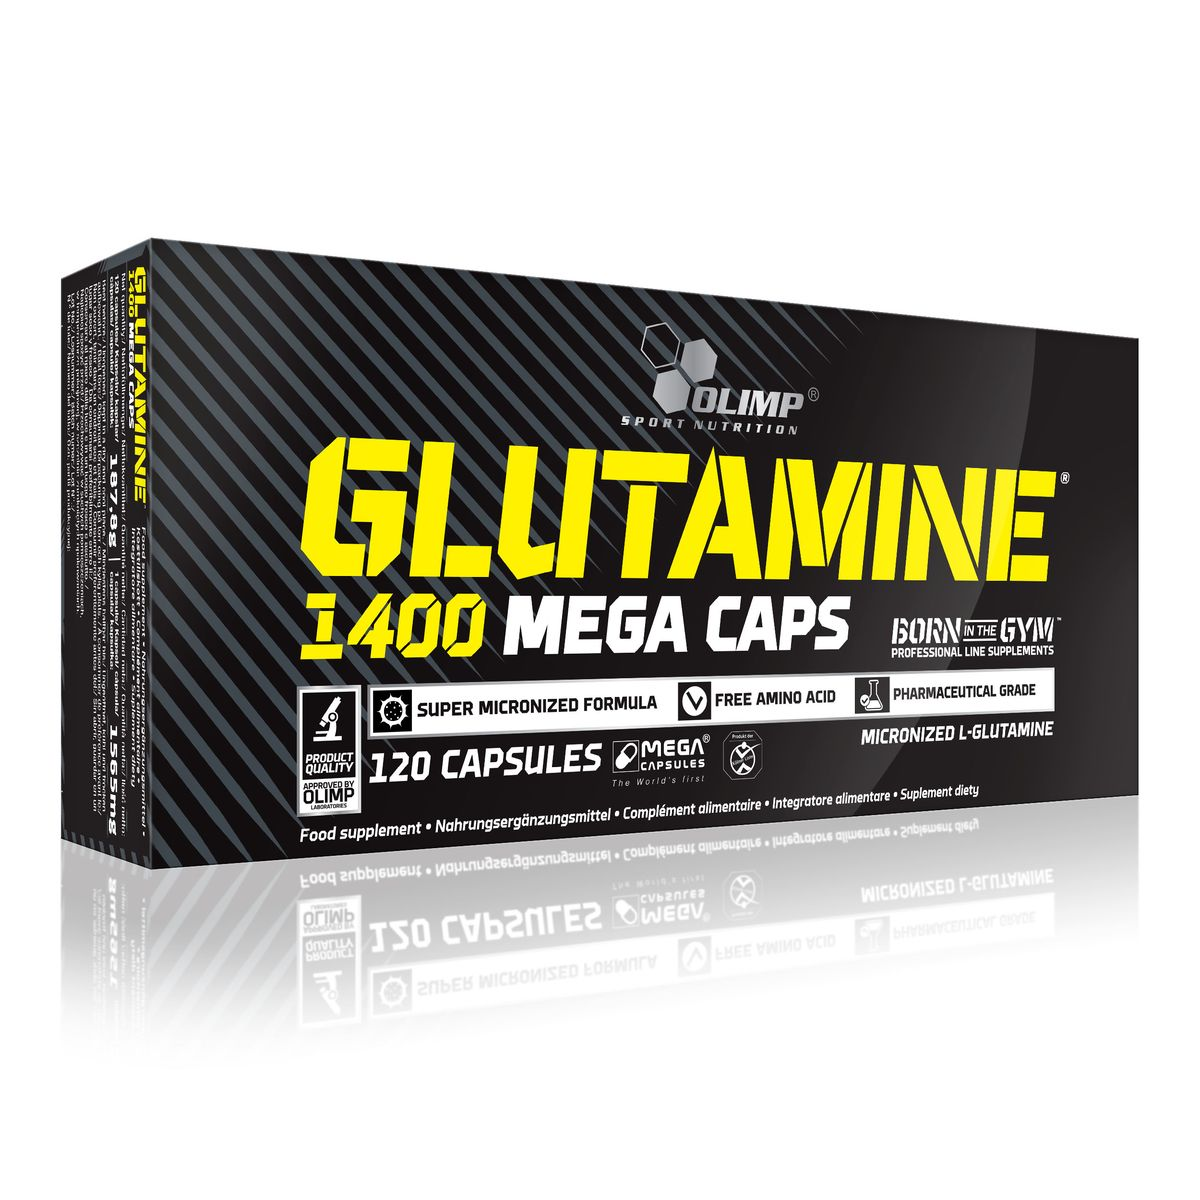 Глютамин Olimp Sport Nutrition Glutamine Mega Caps 1400, 120 капсул ultra mens sport multivitamin formula как принимать